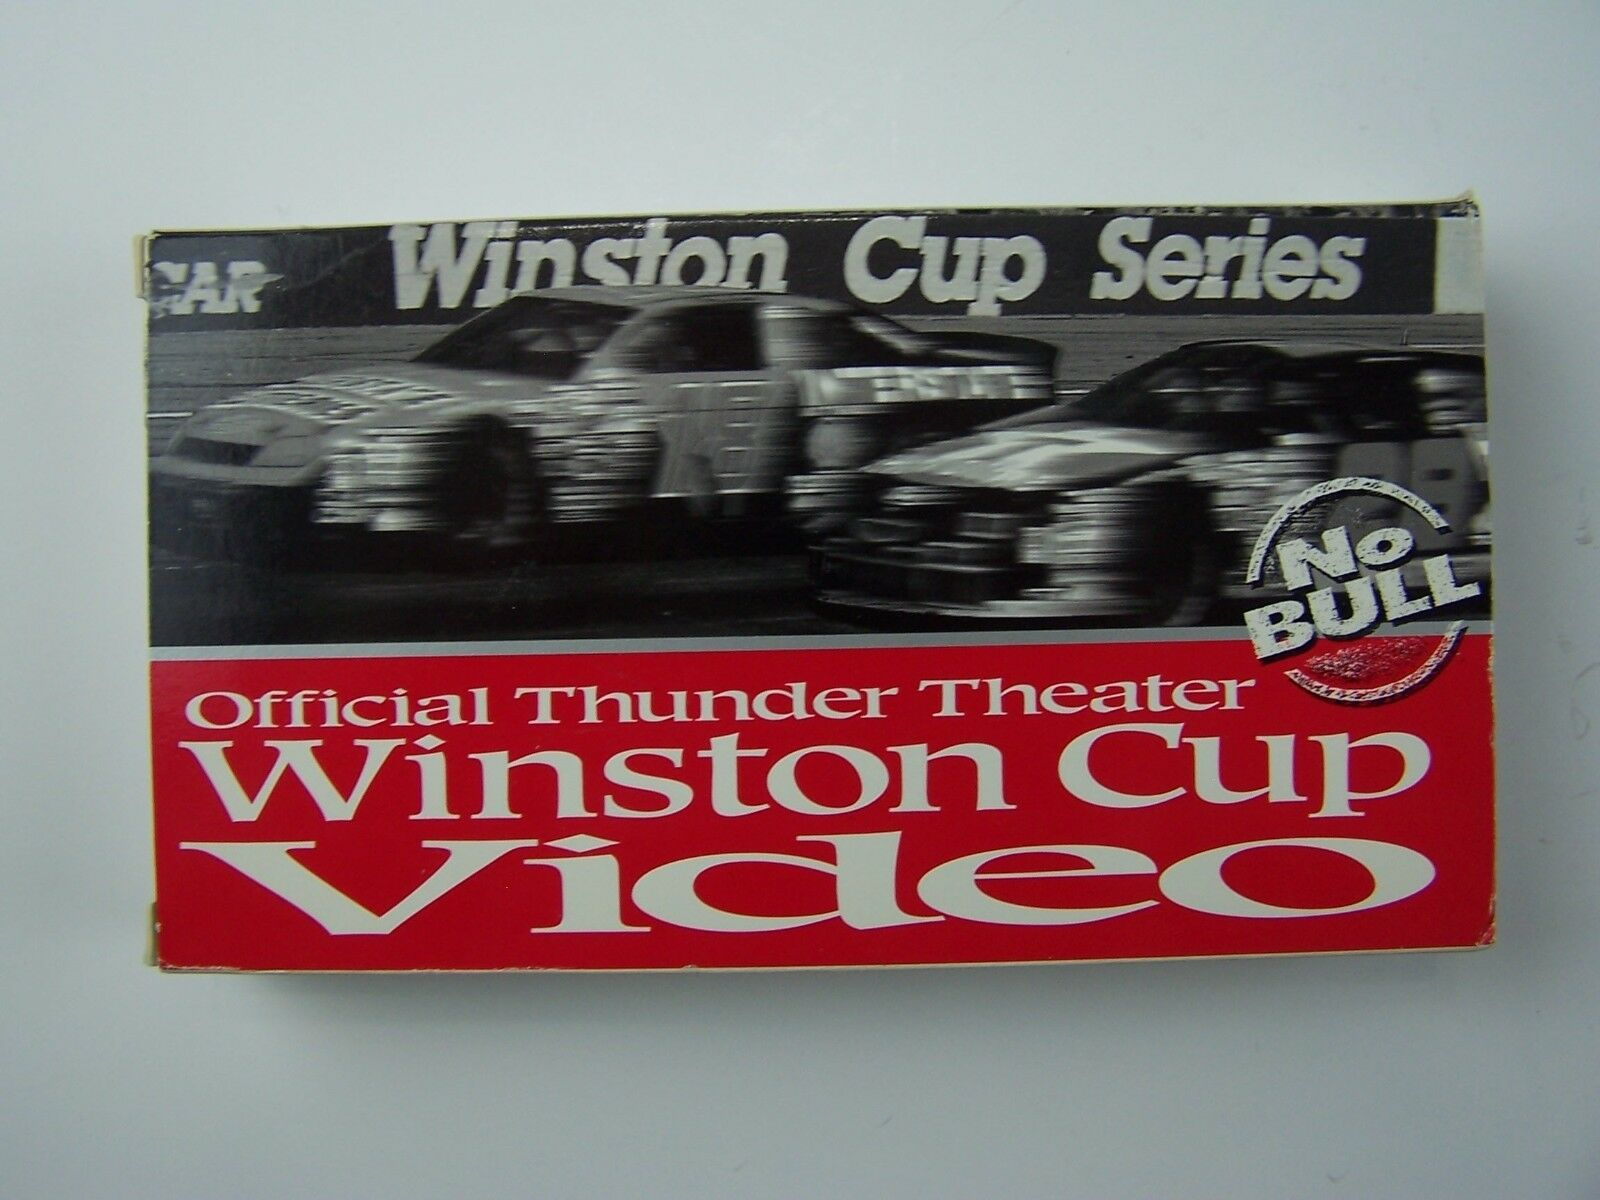 Winston Cup Series No Bull Official Thunder Theater Vid